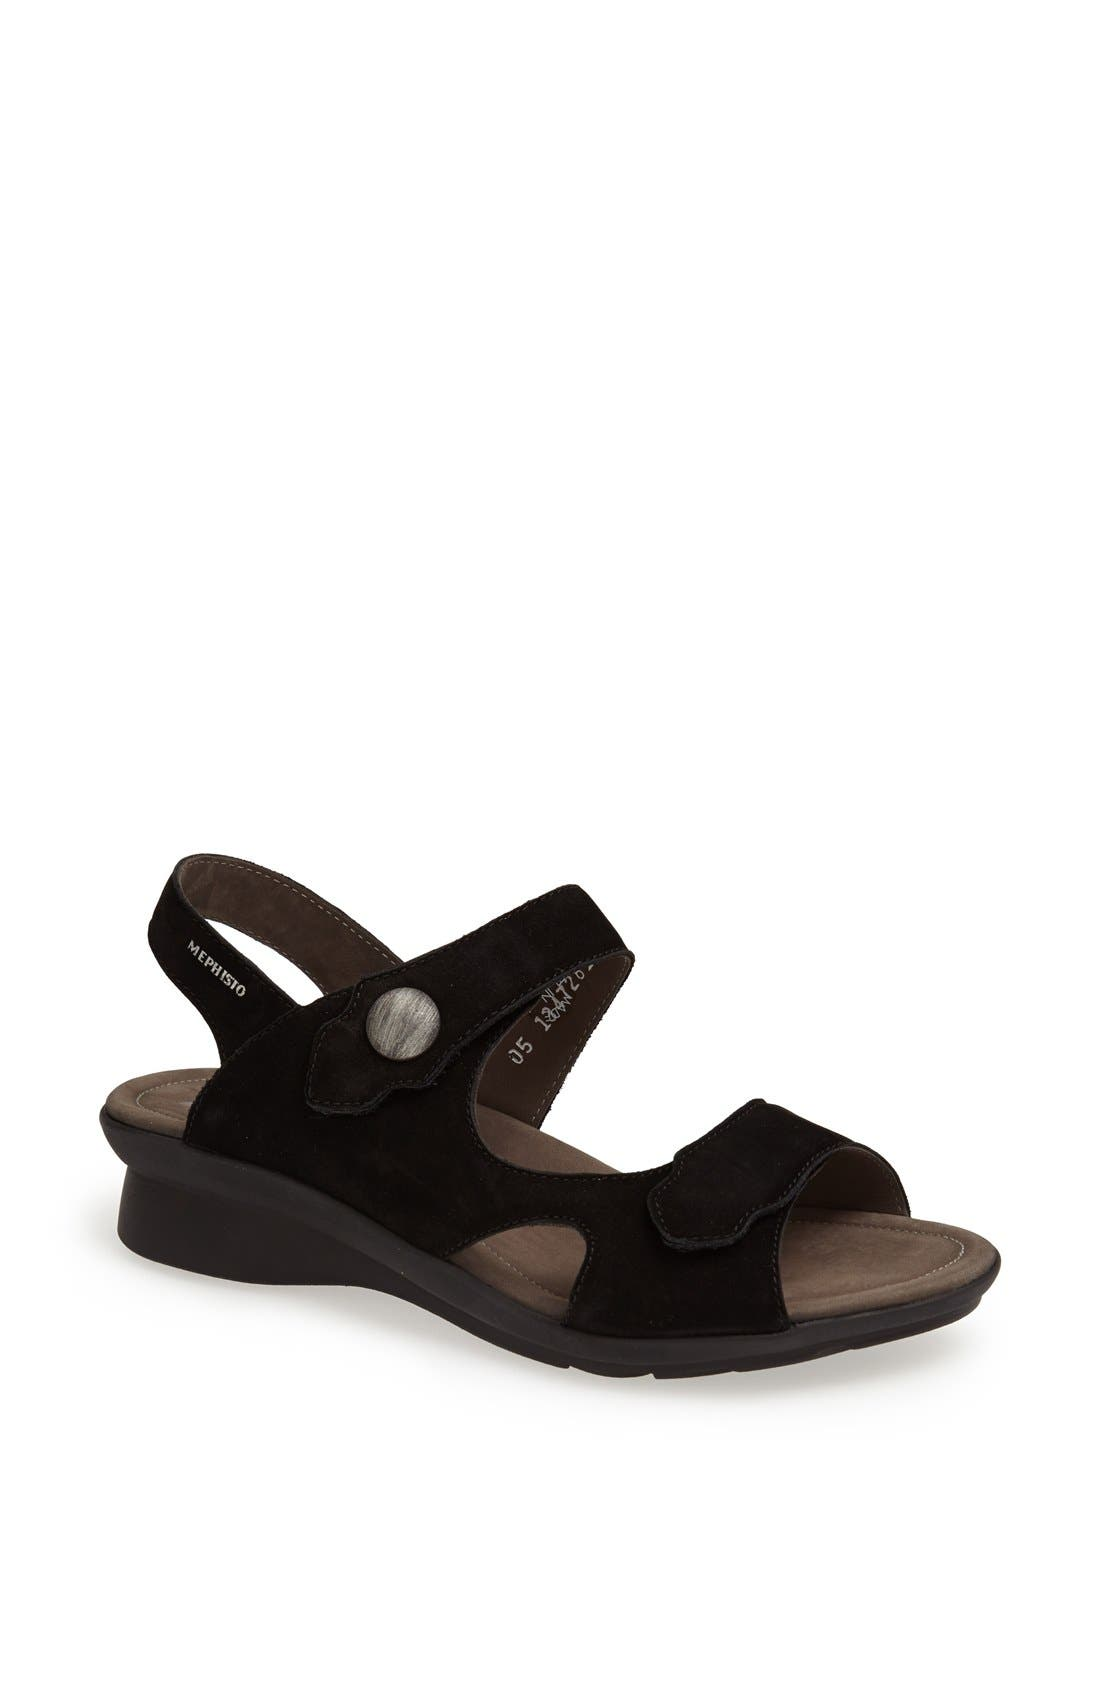 MEPHISTO 'Prudy' Leather Sandal, Main, color, BLACK NUBUCK LEATHER